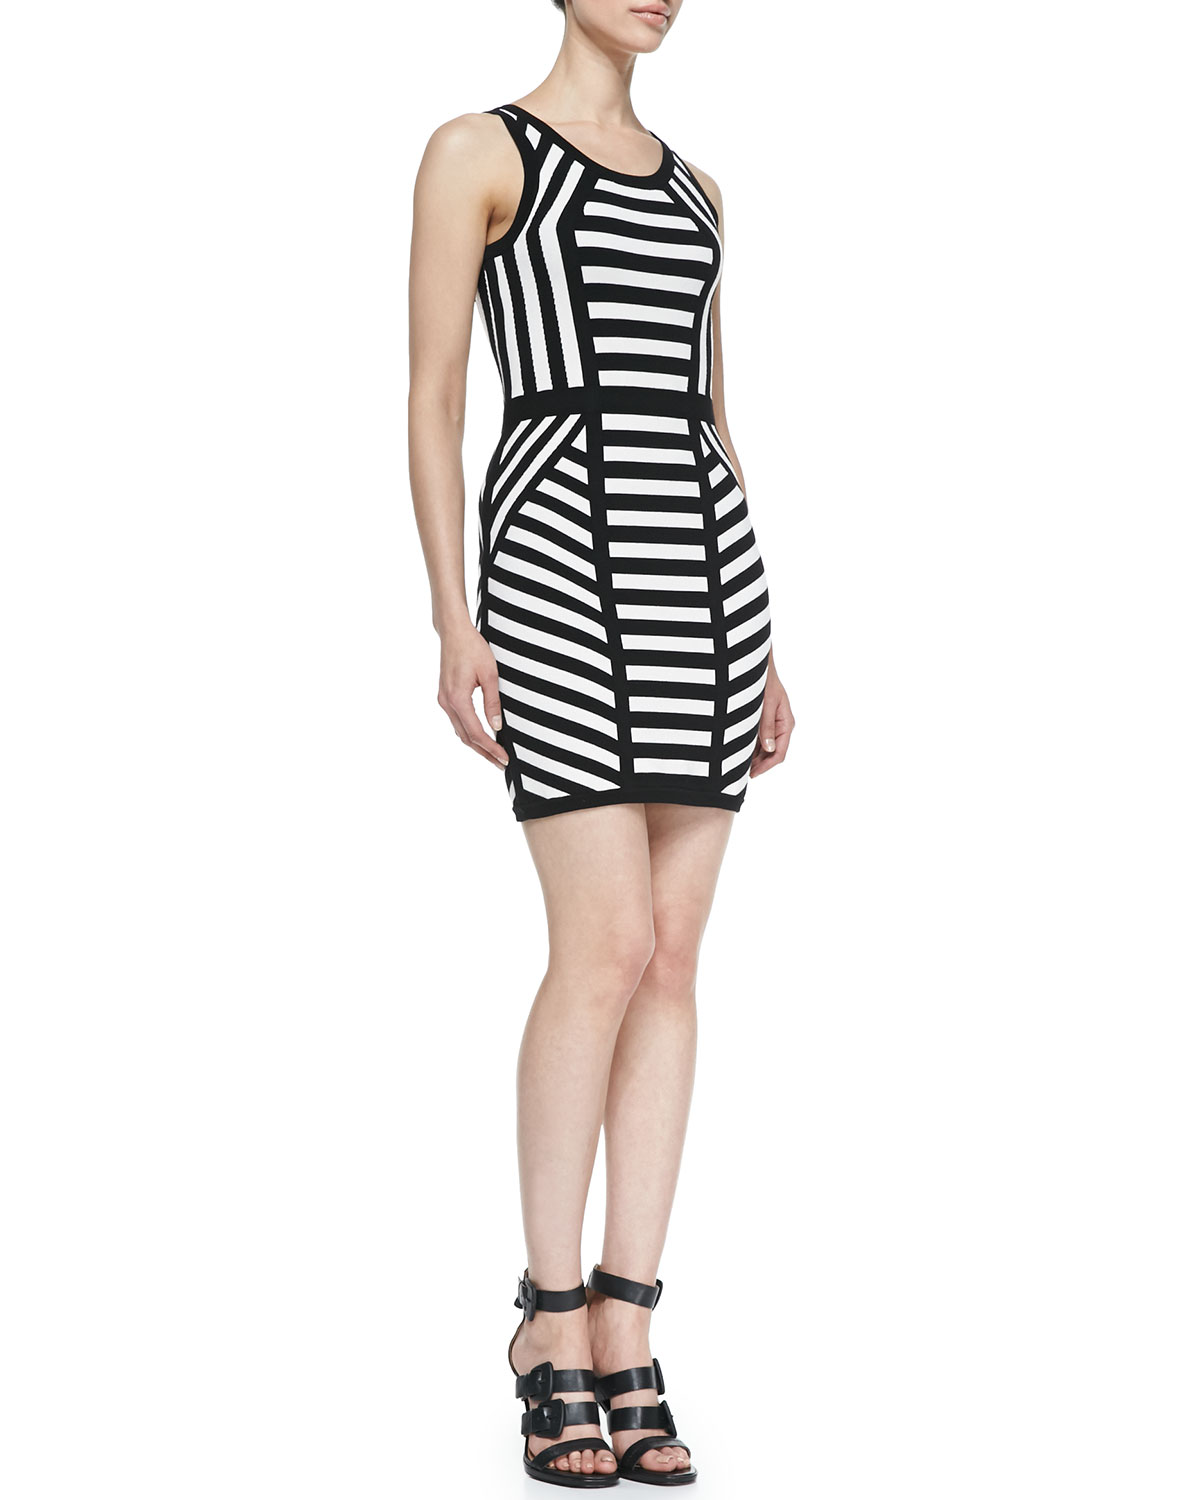 Womens Mitered Stripe Sleeveless Sheath Dress   Milly   Black/White (SMALL)